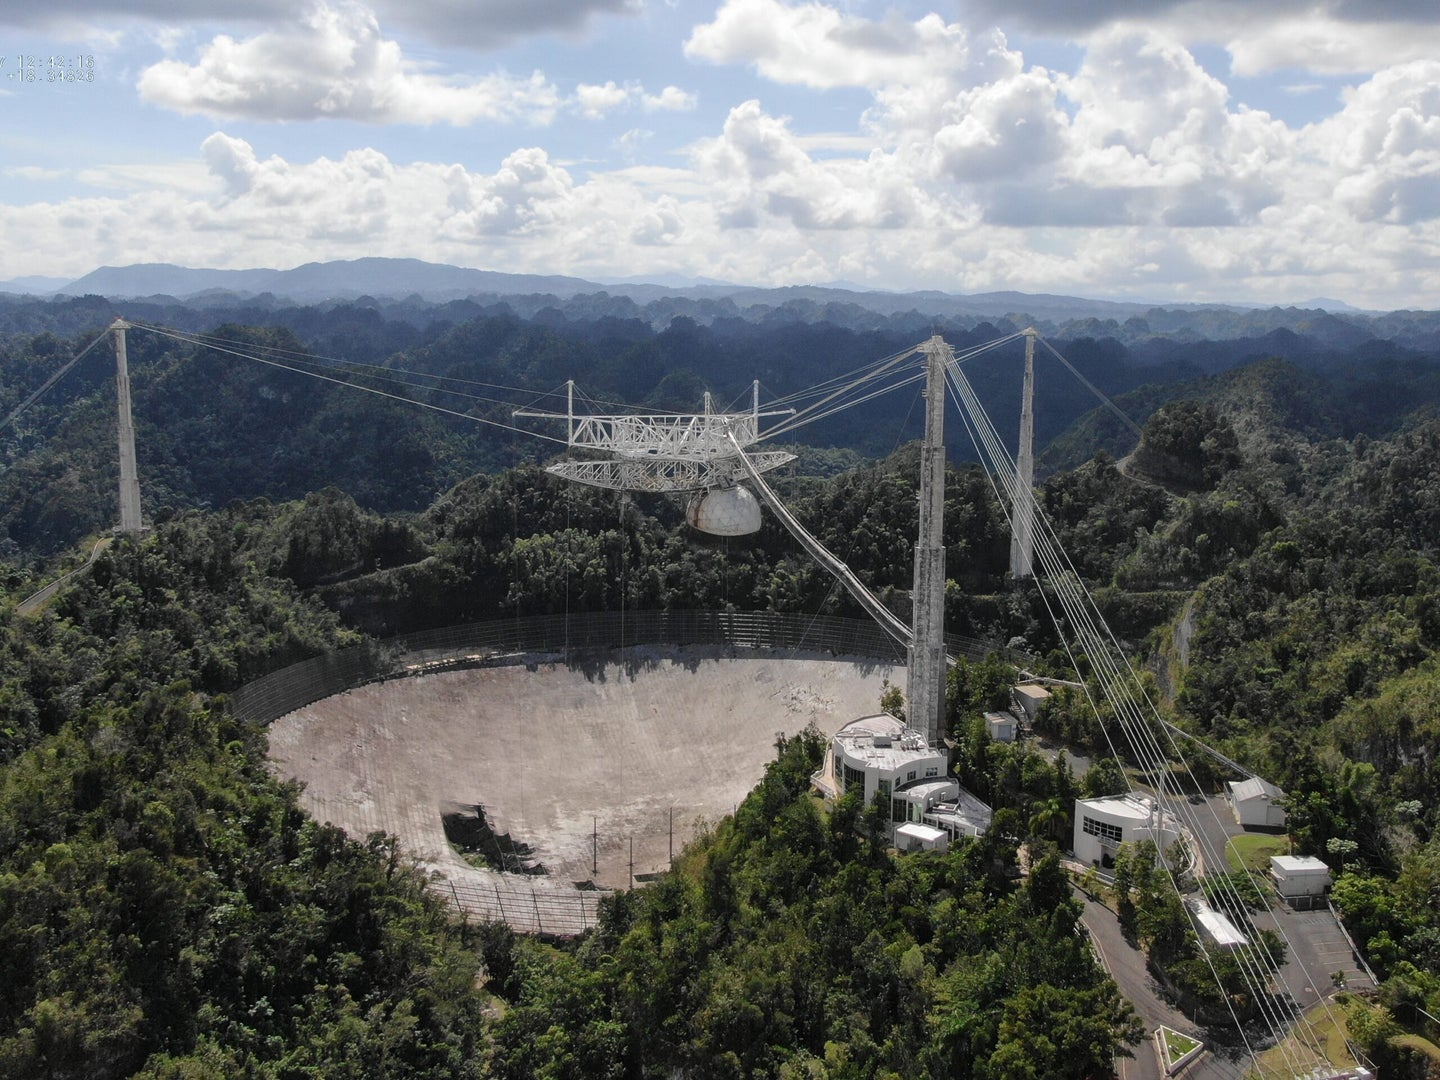 Arecibo's disk suffered damage in November, before the suspended receiver collapsed completely in December.